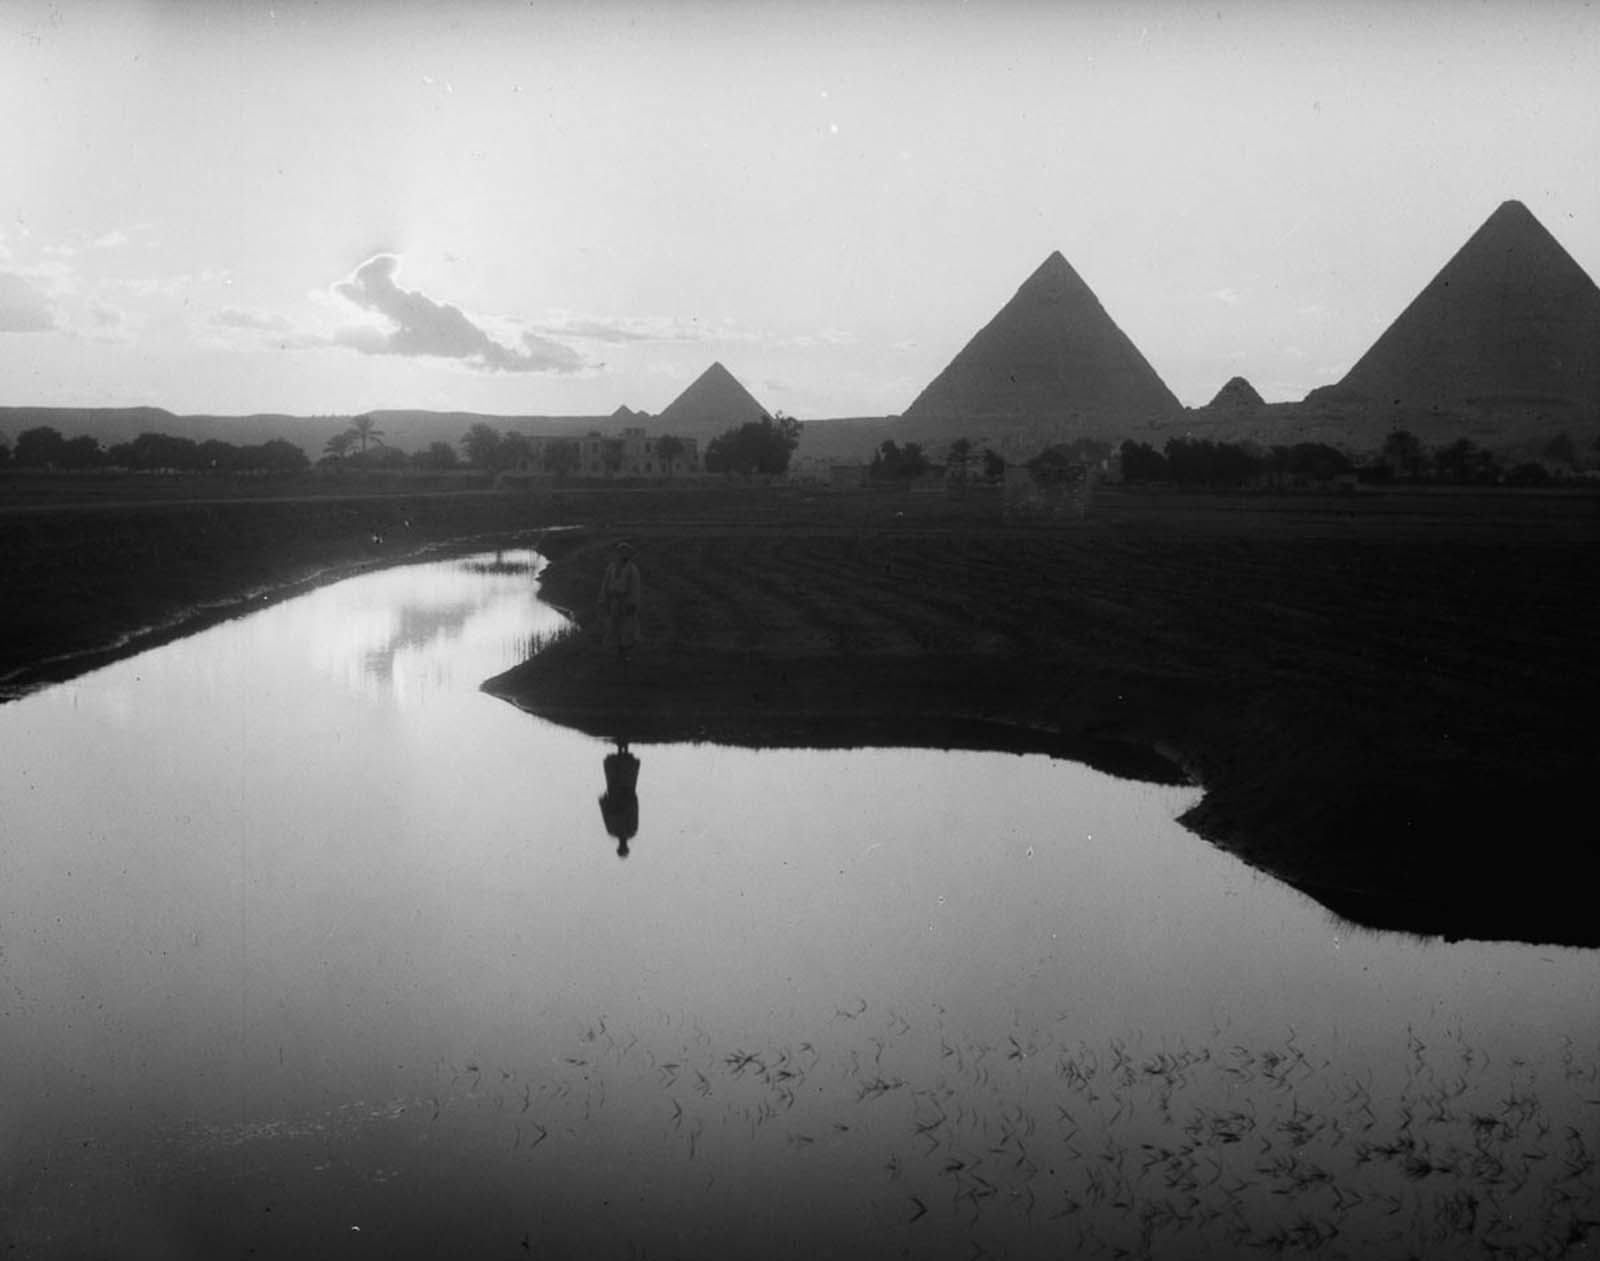 A farmer stands on the Nile floodplains near the pyramids of Giza. 1936.